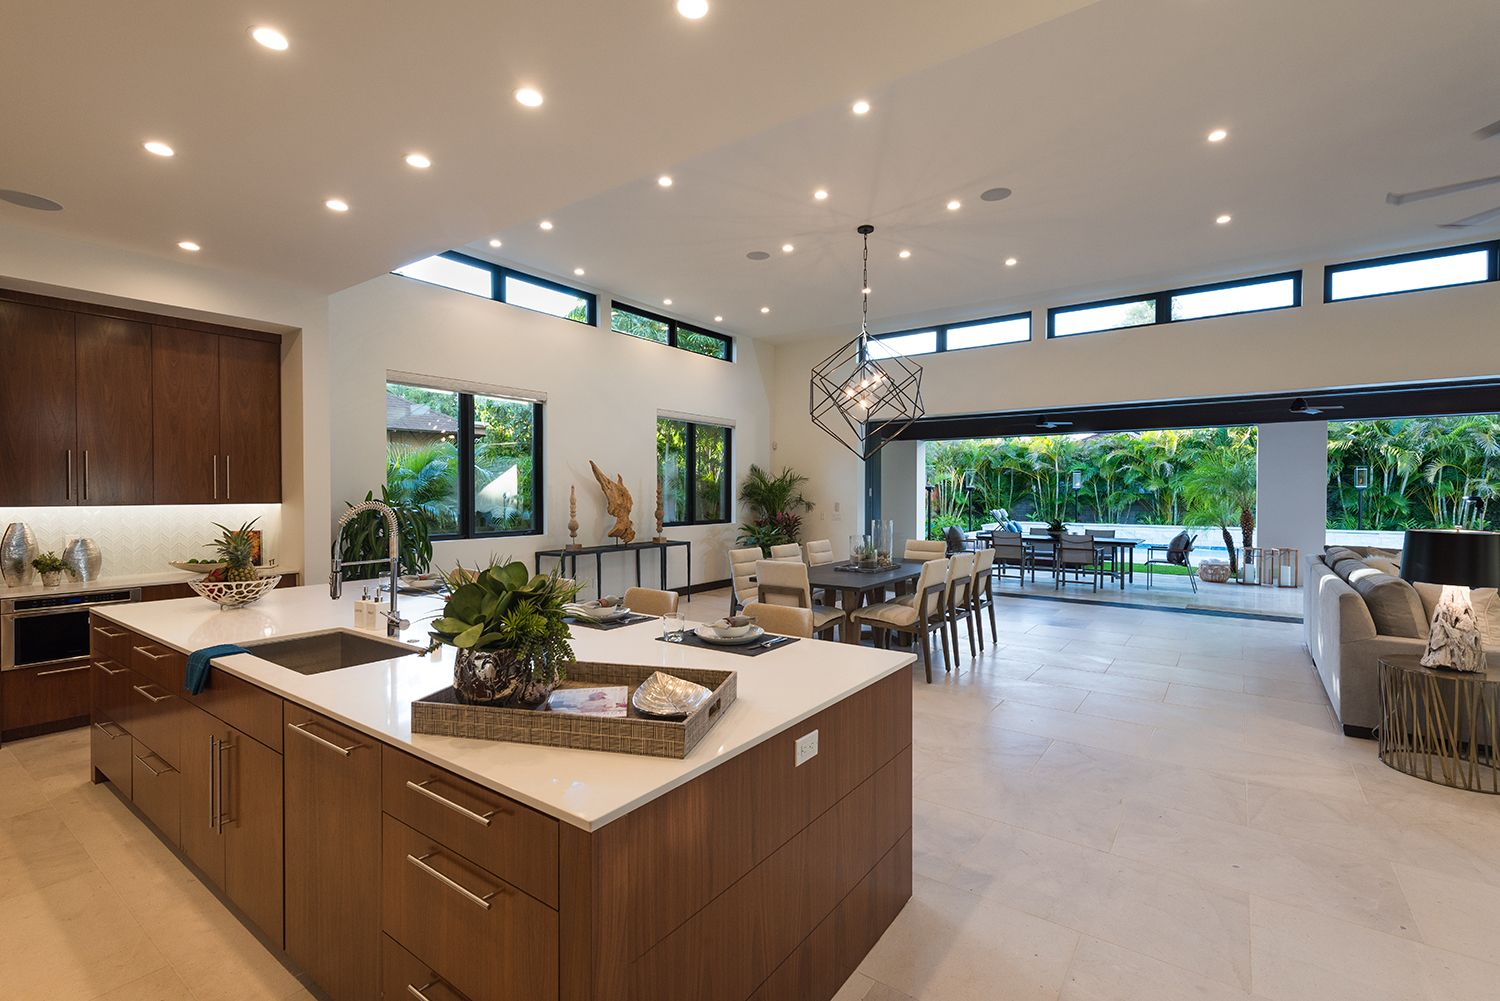 Kitchen And Dining Room Open Up To The Outdoors Hawaii Homes Open Dining Room Home